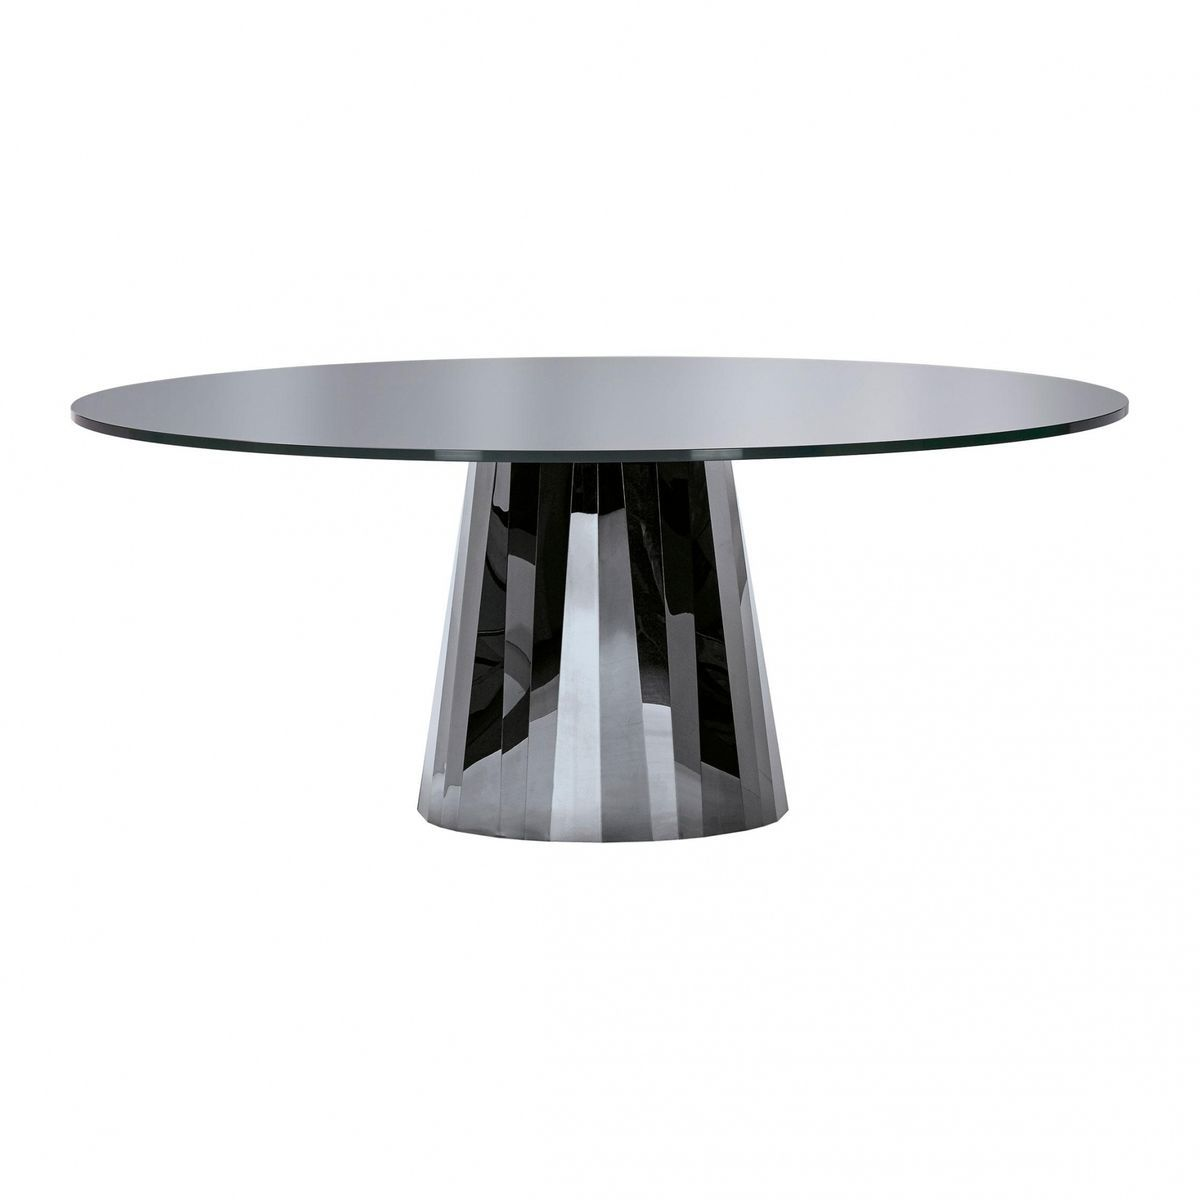 Pli Dining Table Table Top Lacquered   Onyx Black/tabletop Fully Colour  Lacquered